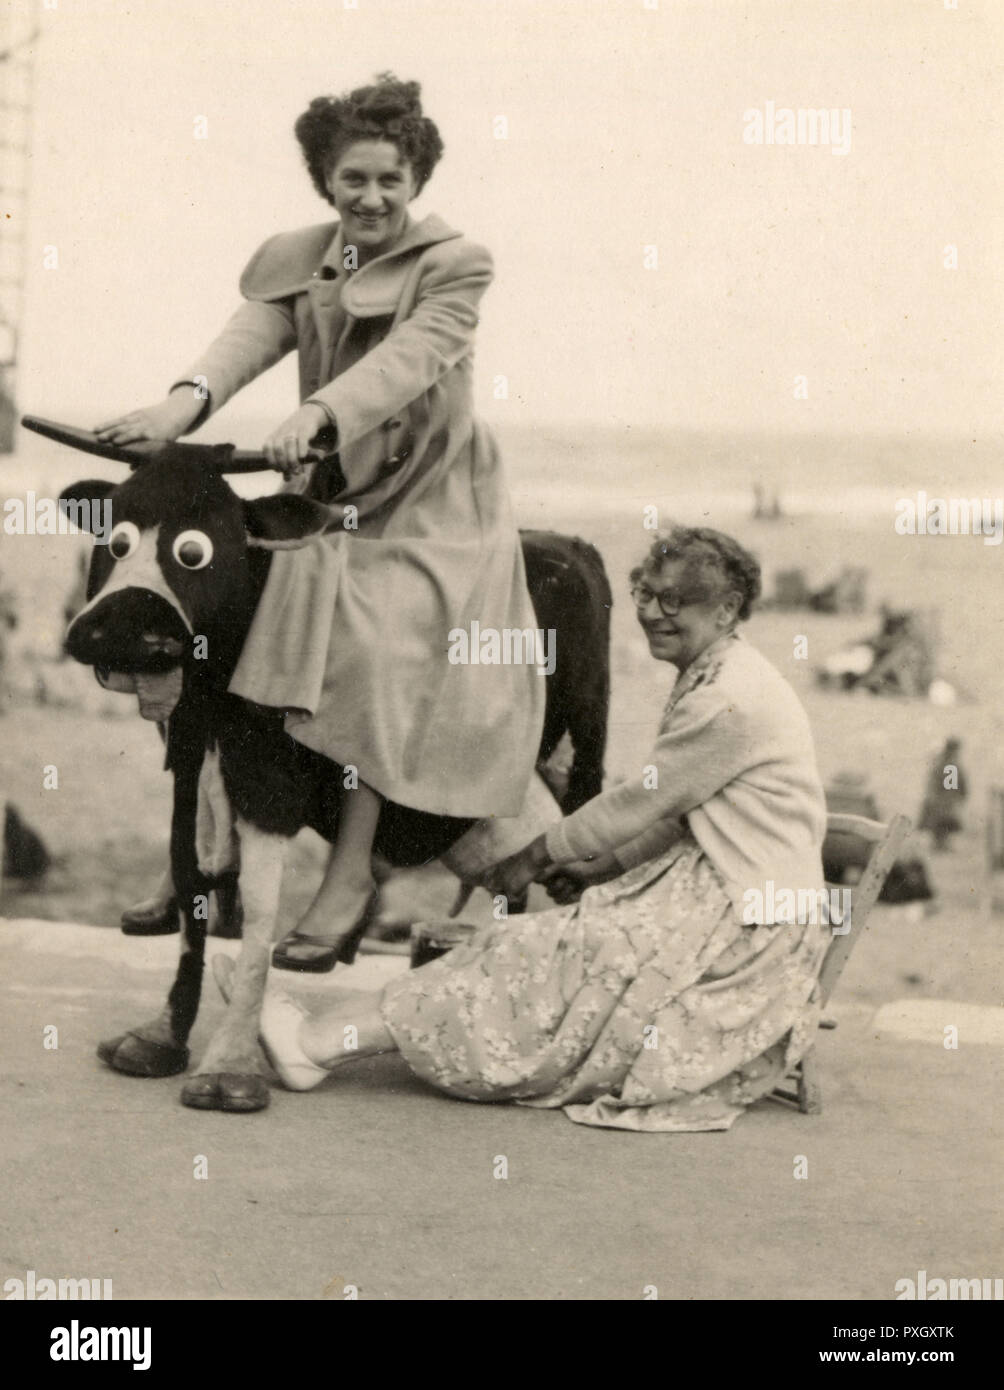 Two ladies posing for a comedy photograph at an unidentified British seaside resort.  One sits on a fake cow while the other pretends to milk it from some alarmingly authentic looking udders!     Date: 1950s - Stock Image